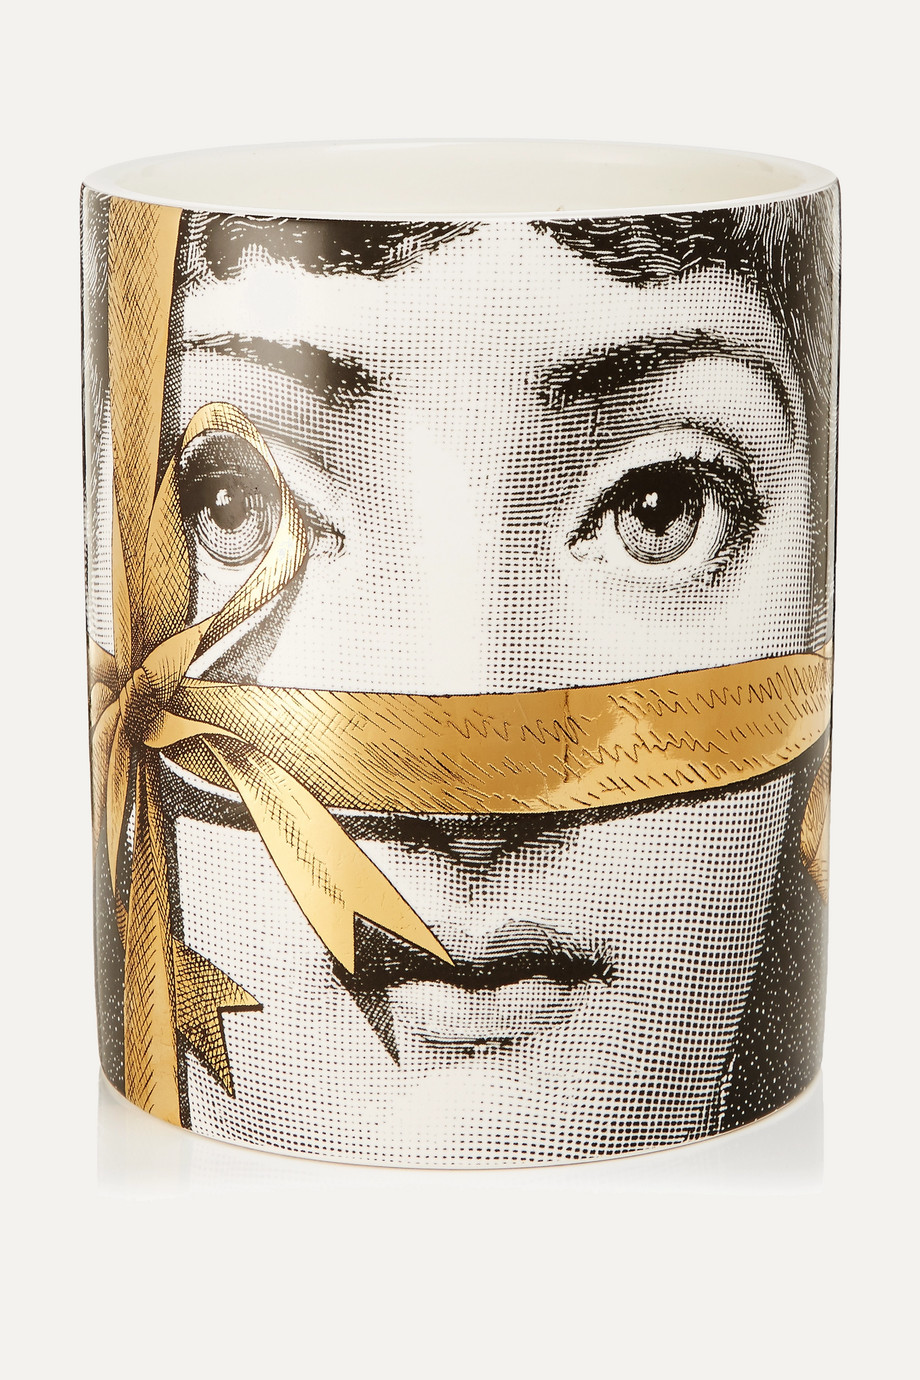 Fornasetti Regalo Gold Scented Candle, 900g